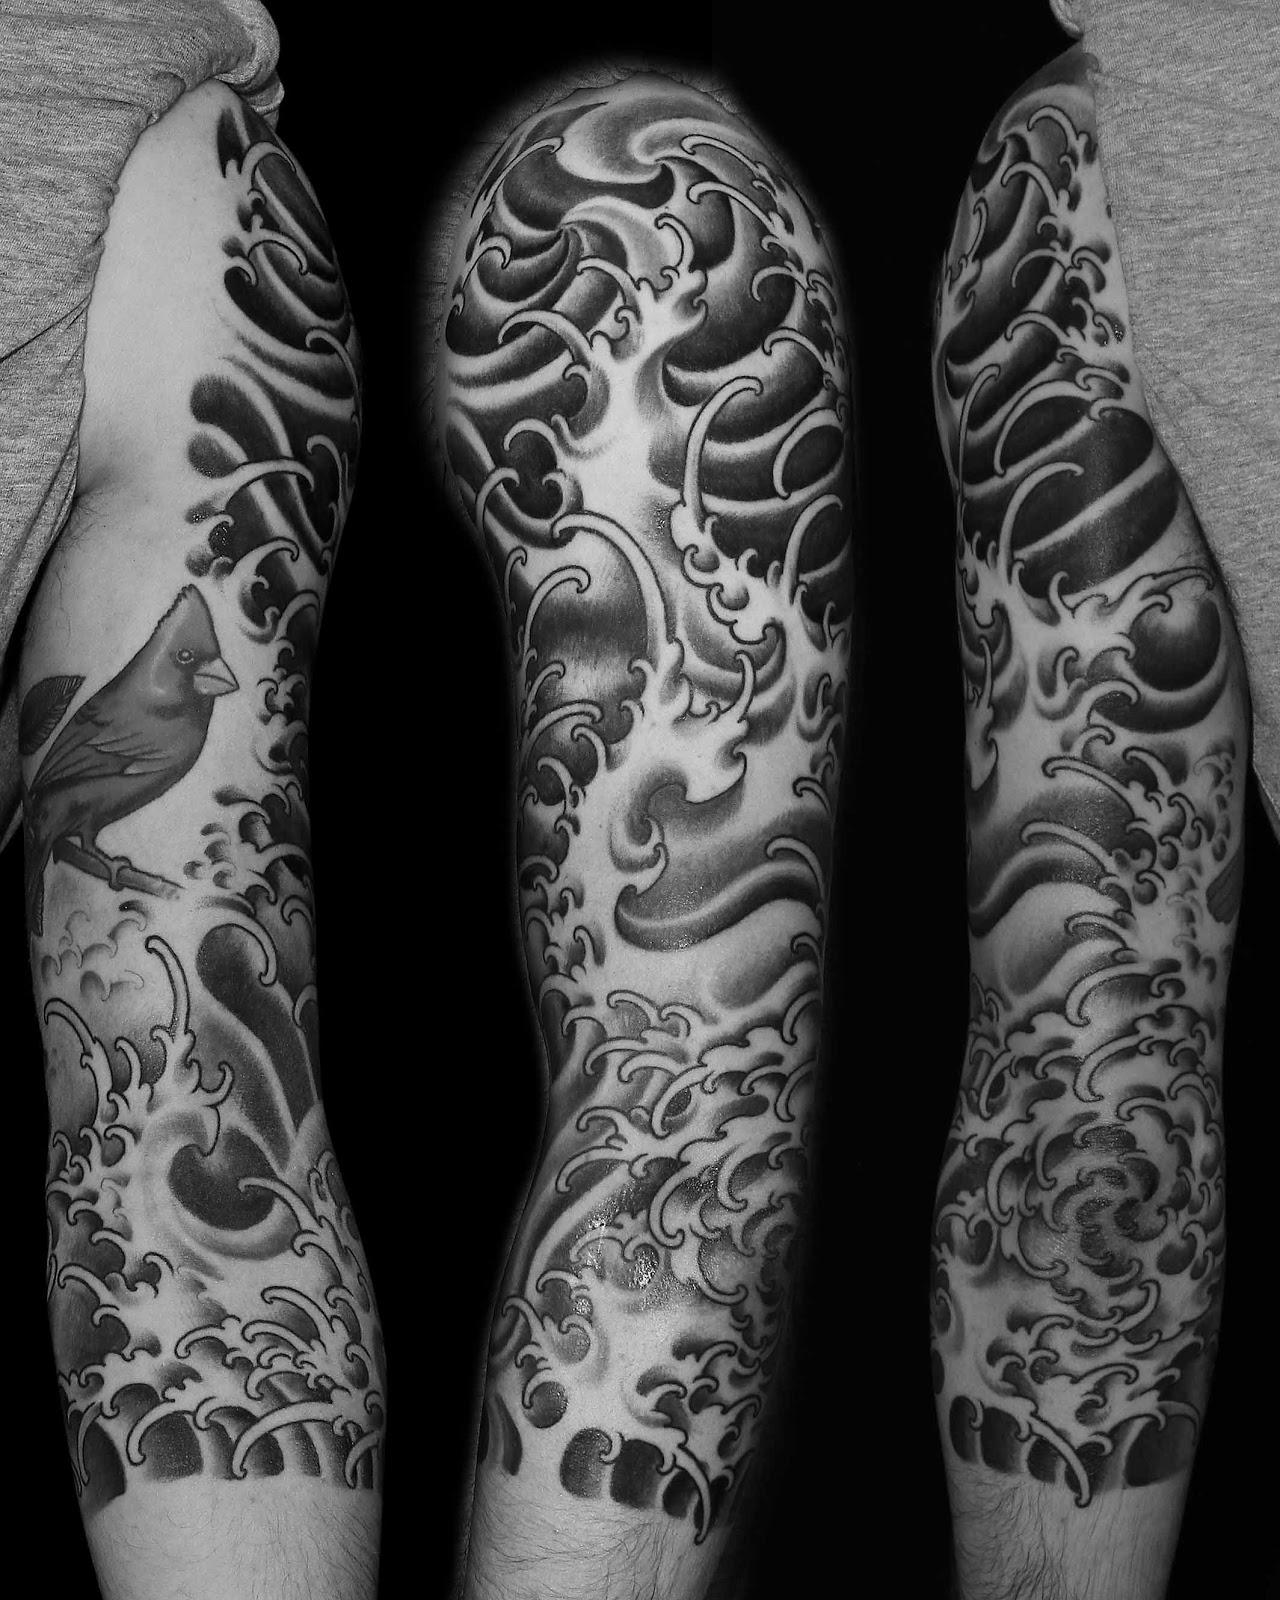 Black And White Sleeve Tattoo Designs For Men: Lukacsarts Tattoo: April 2013